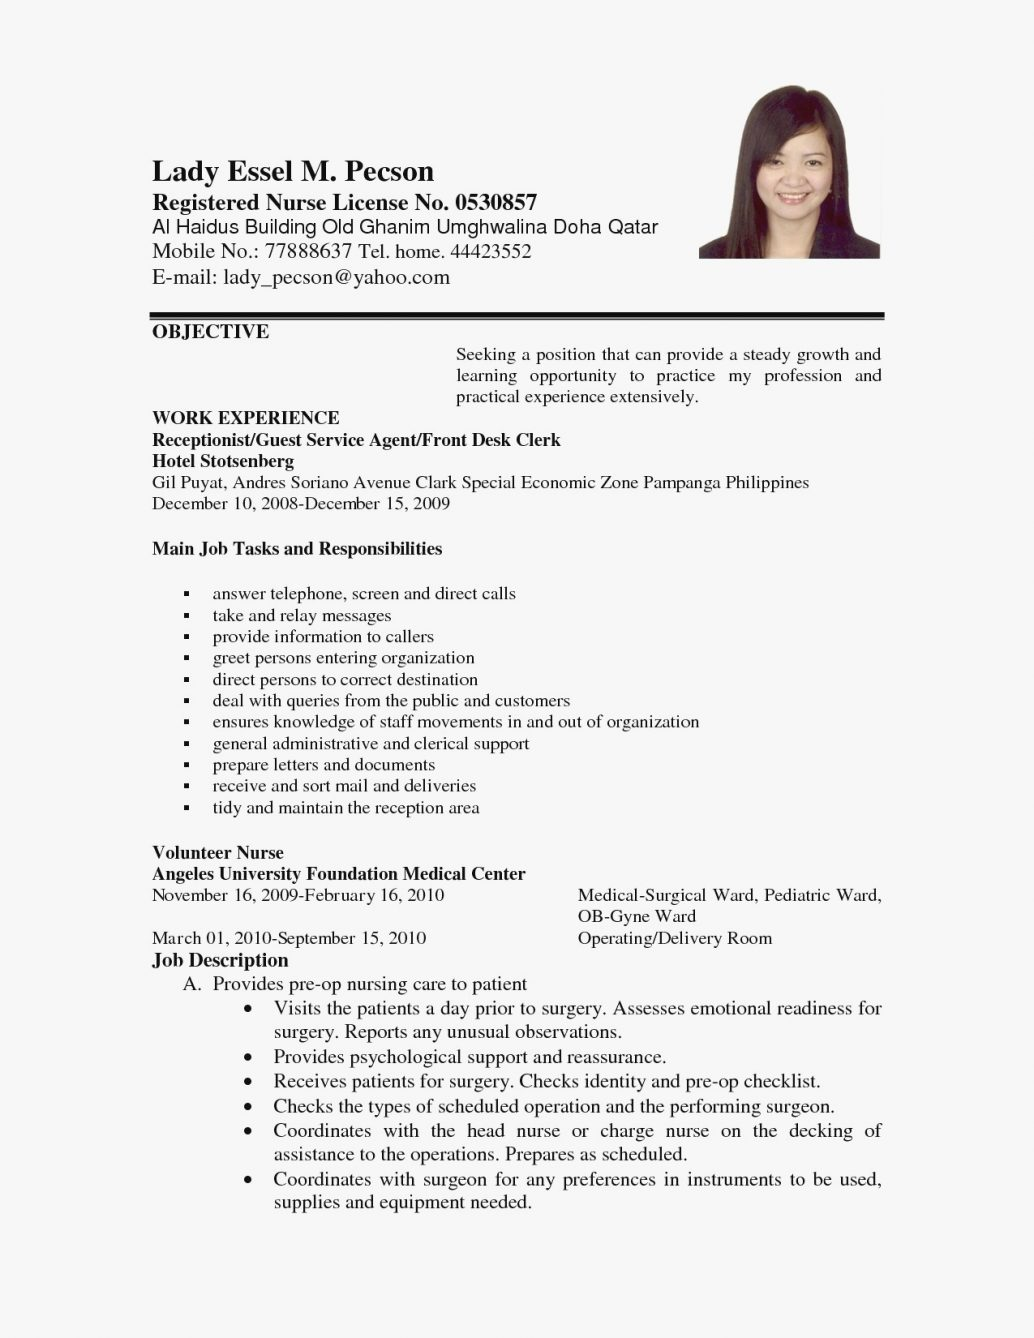 Objective For Resume Job Objective In Resumes Simple For Resume Fresh Good Objectives New Post Administrative Assistant Effective Objecti Customer Service Career Call Center General Phlebotomist Teac objective for resume|wikiresume.com